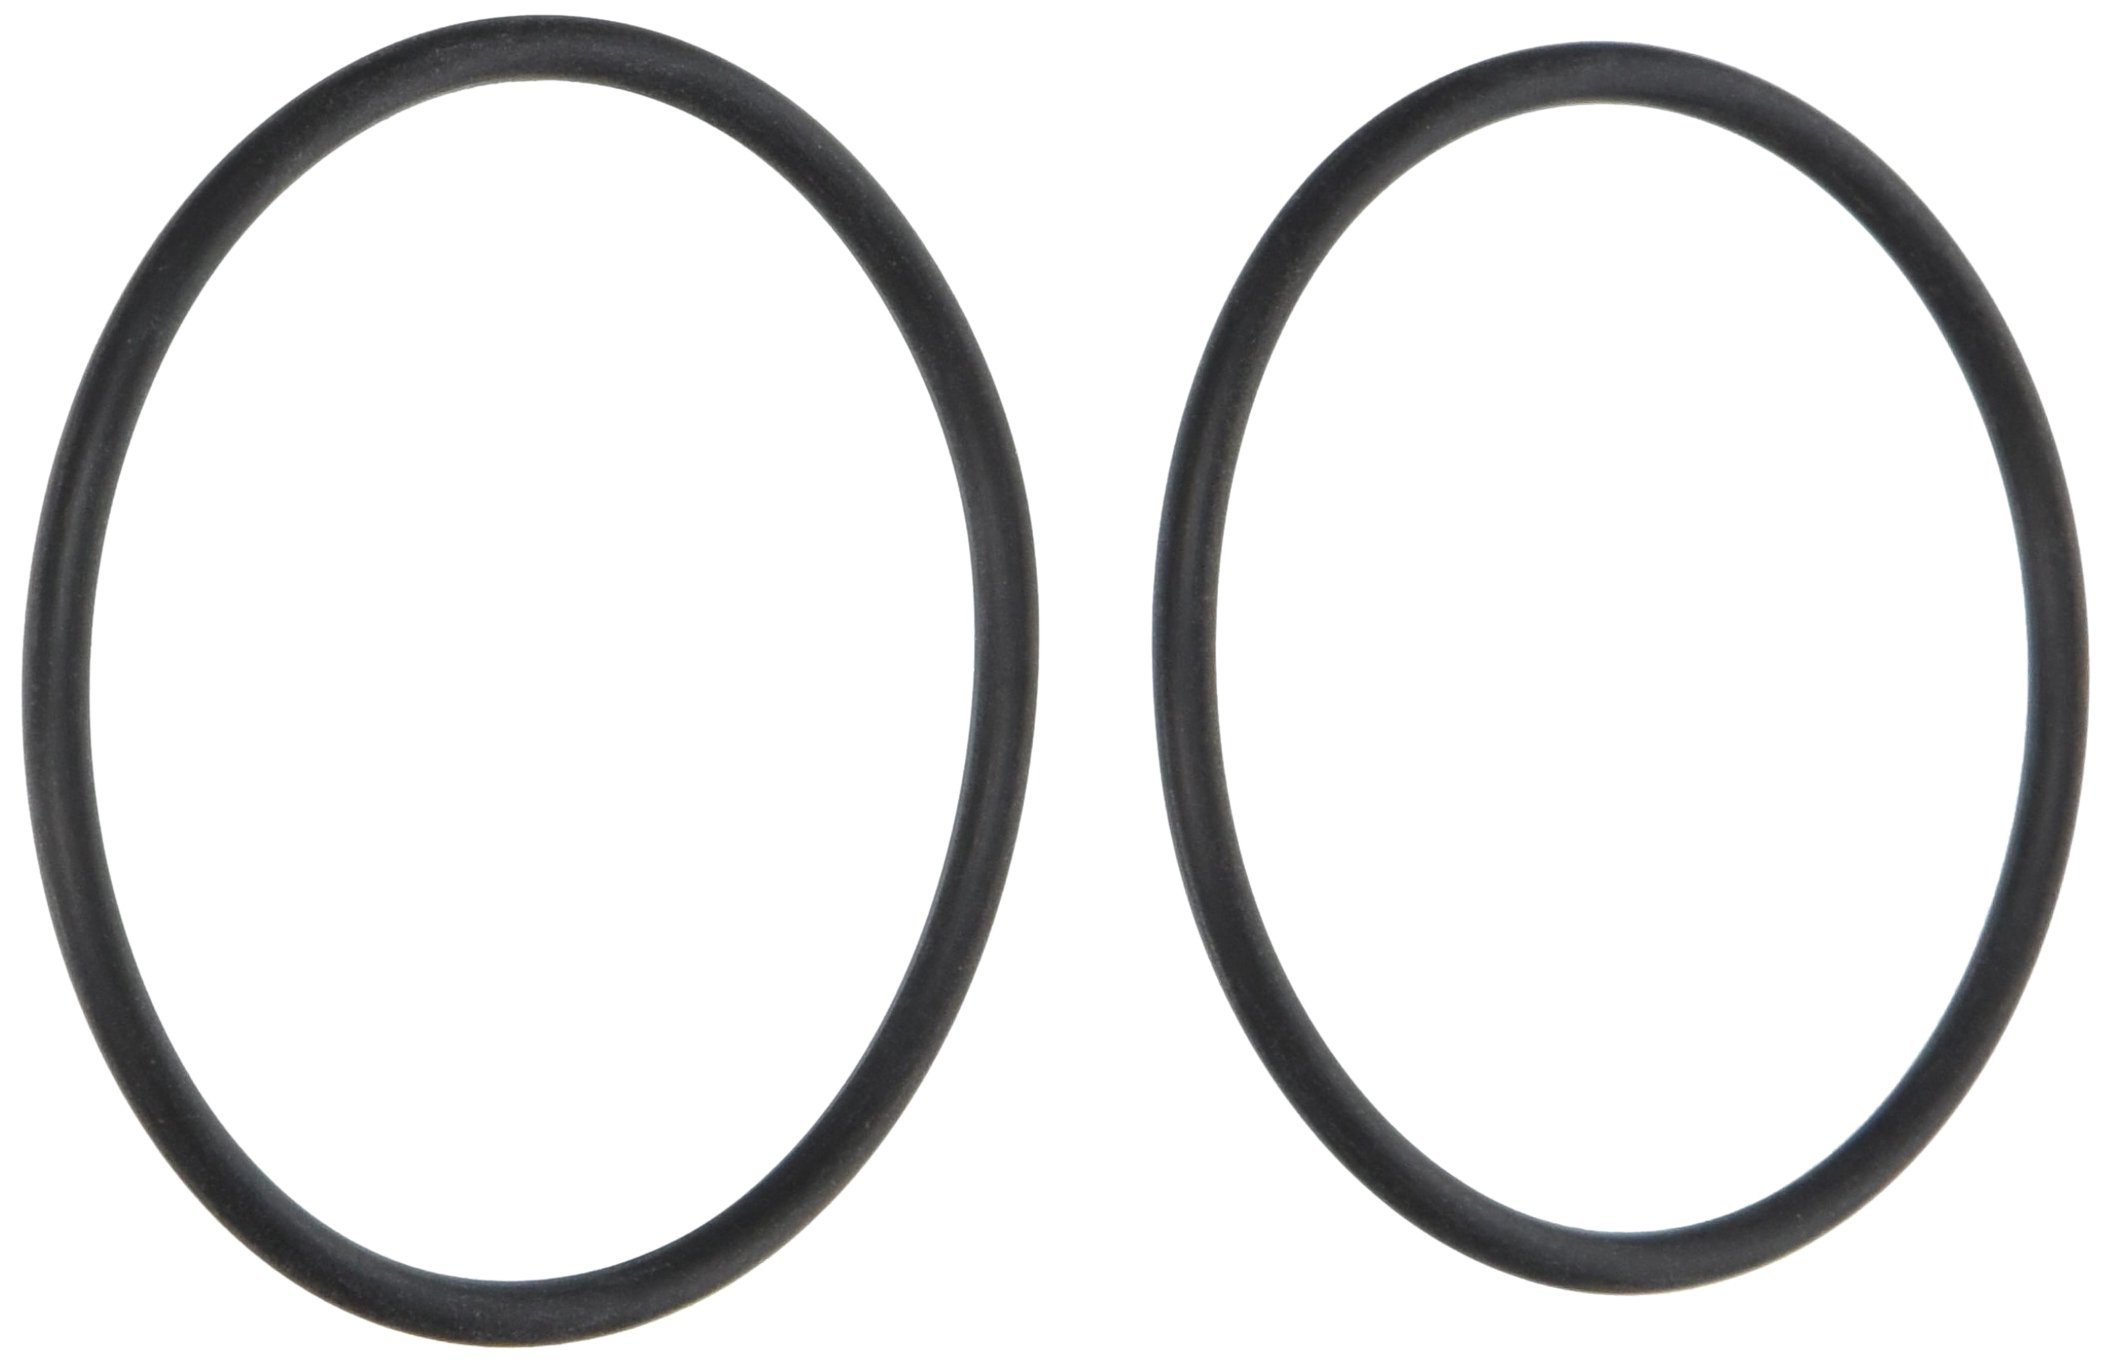 Hayward HAXfor1930 O-rings Replacement for Hayward H-Series Ed1 Style Pool Heaters